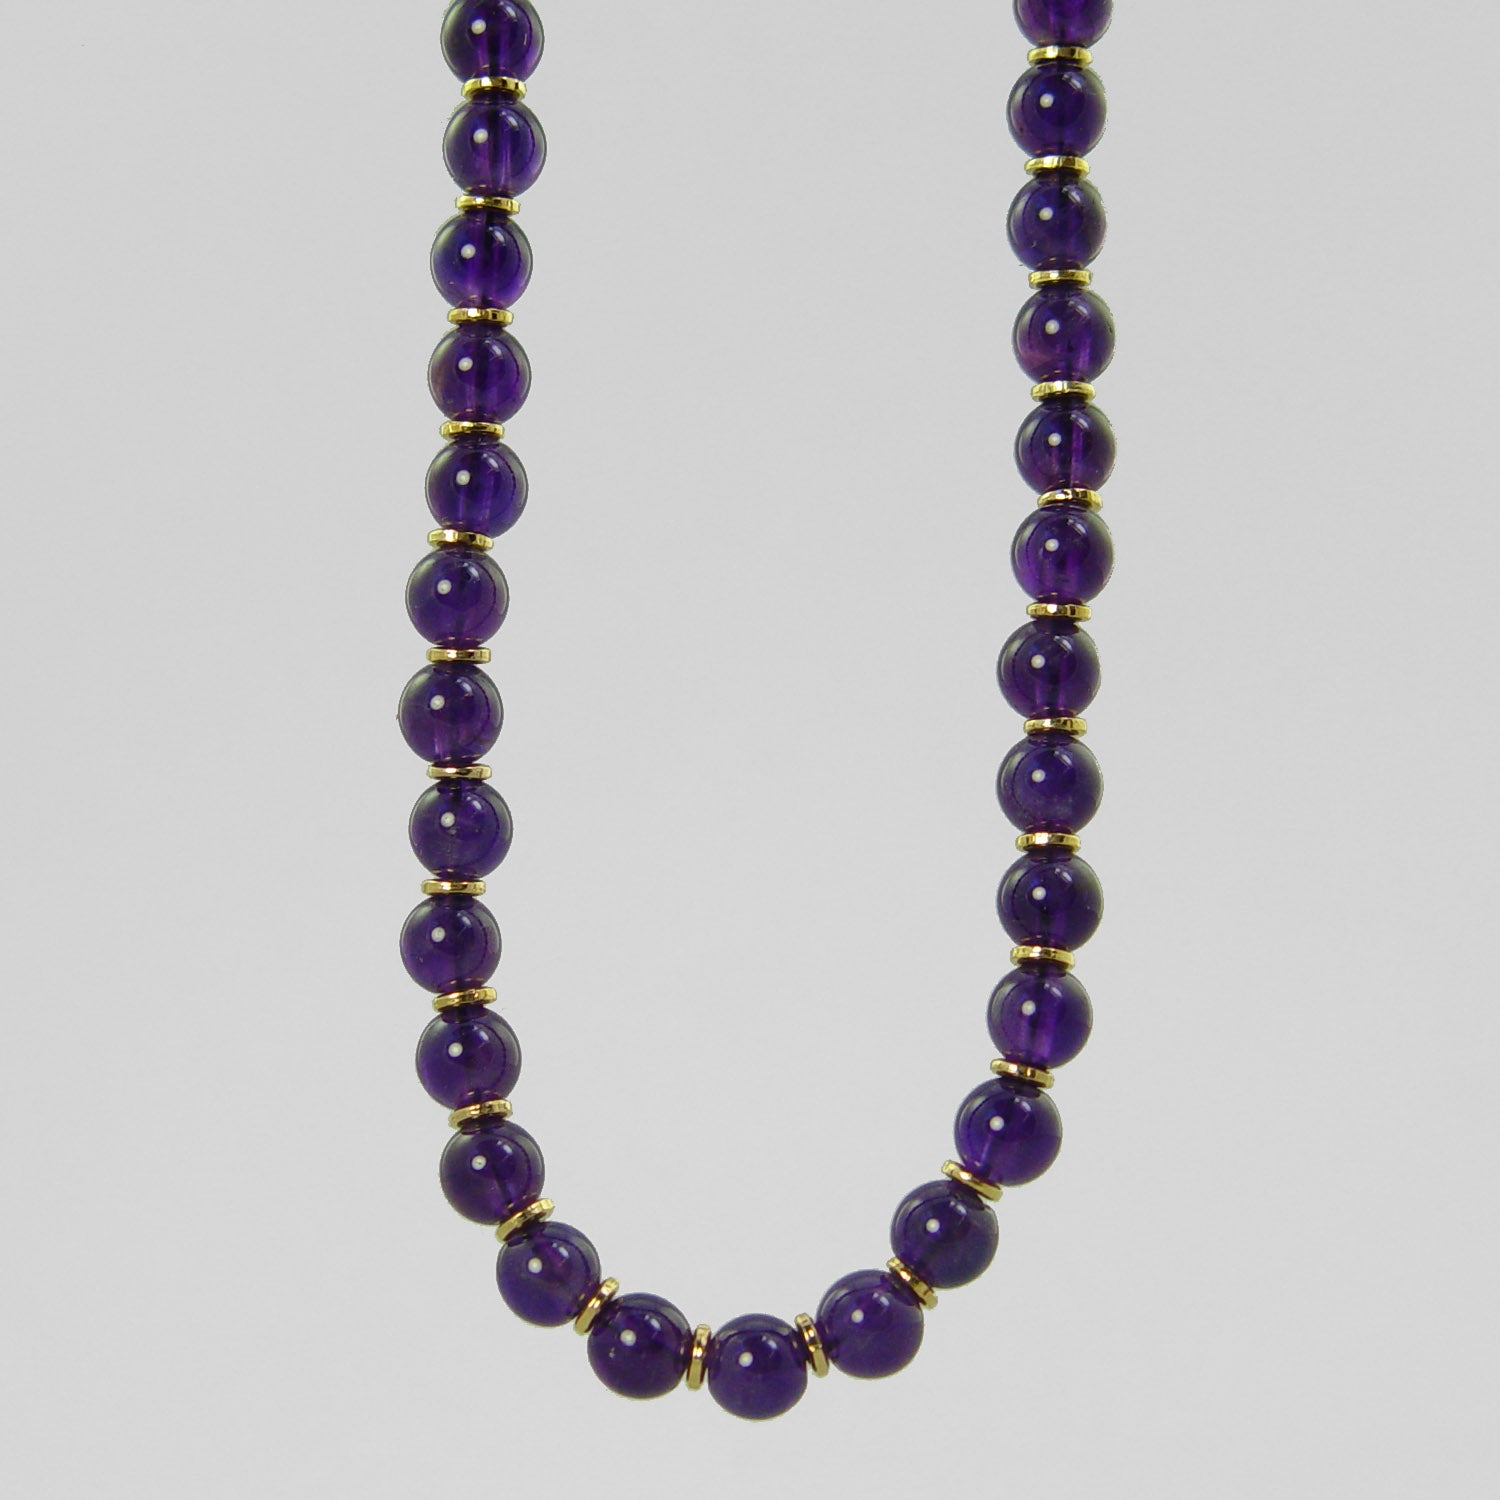 "Amethyst Round Bead with Accents 16"", 18"", 20"" or 24"" Necklace"